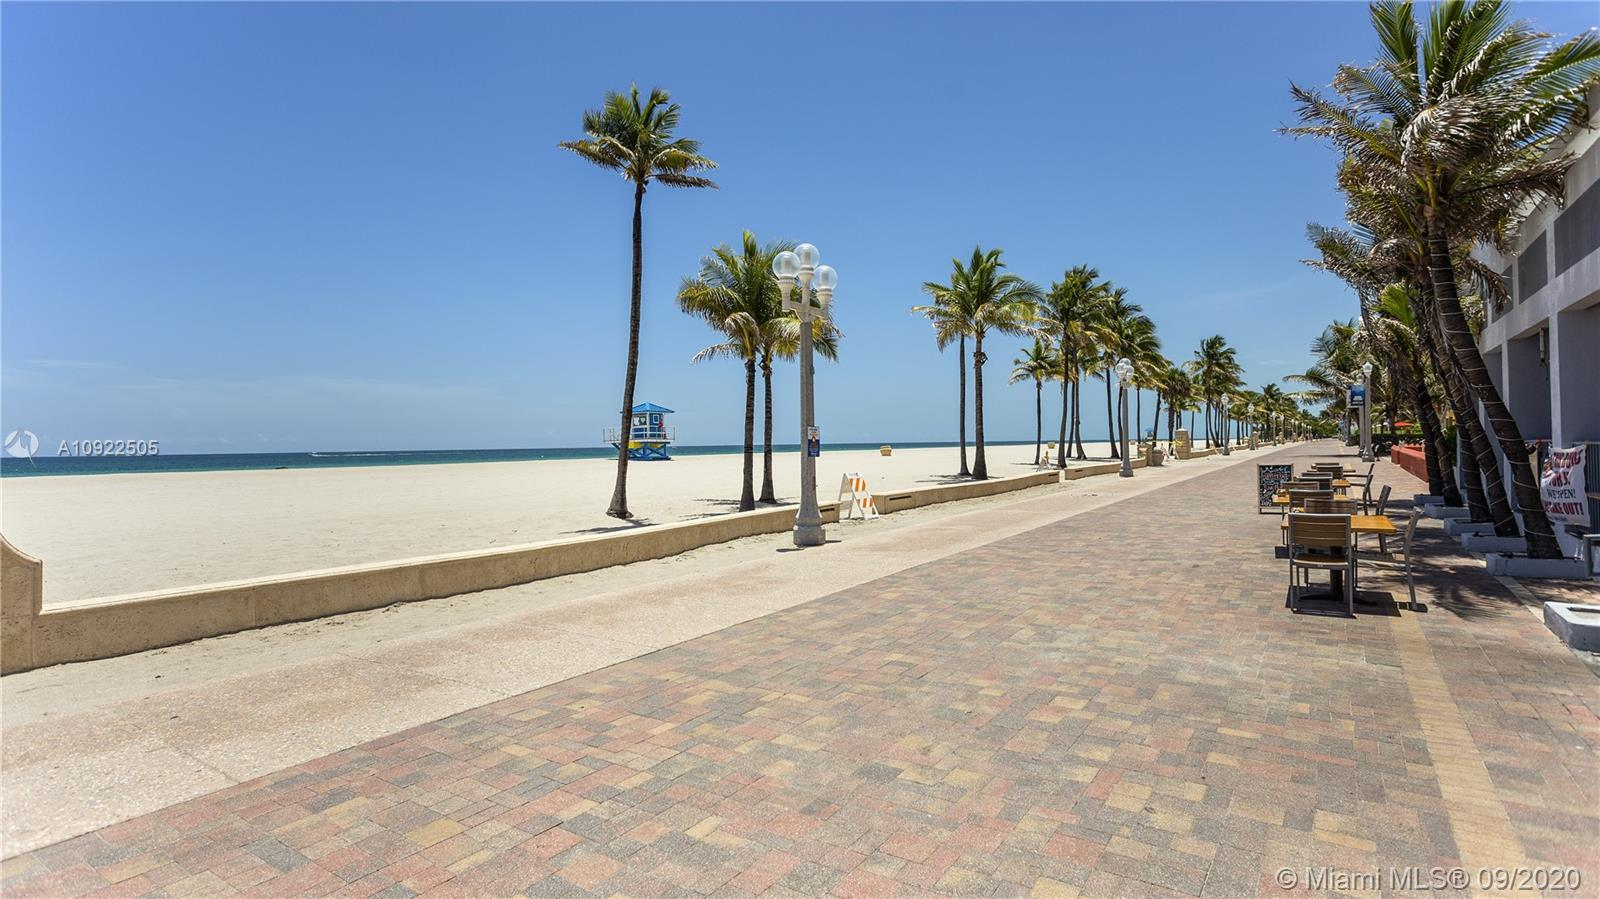 HOLLYWOOD BEACH BEAUTY!  Turnkey ready!  Huge income producing potential, and one of the best vacati